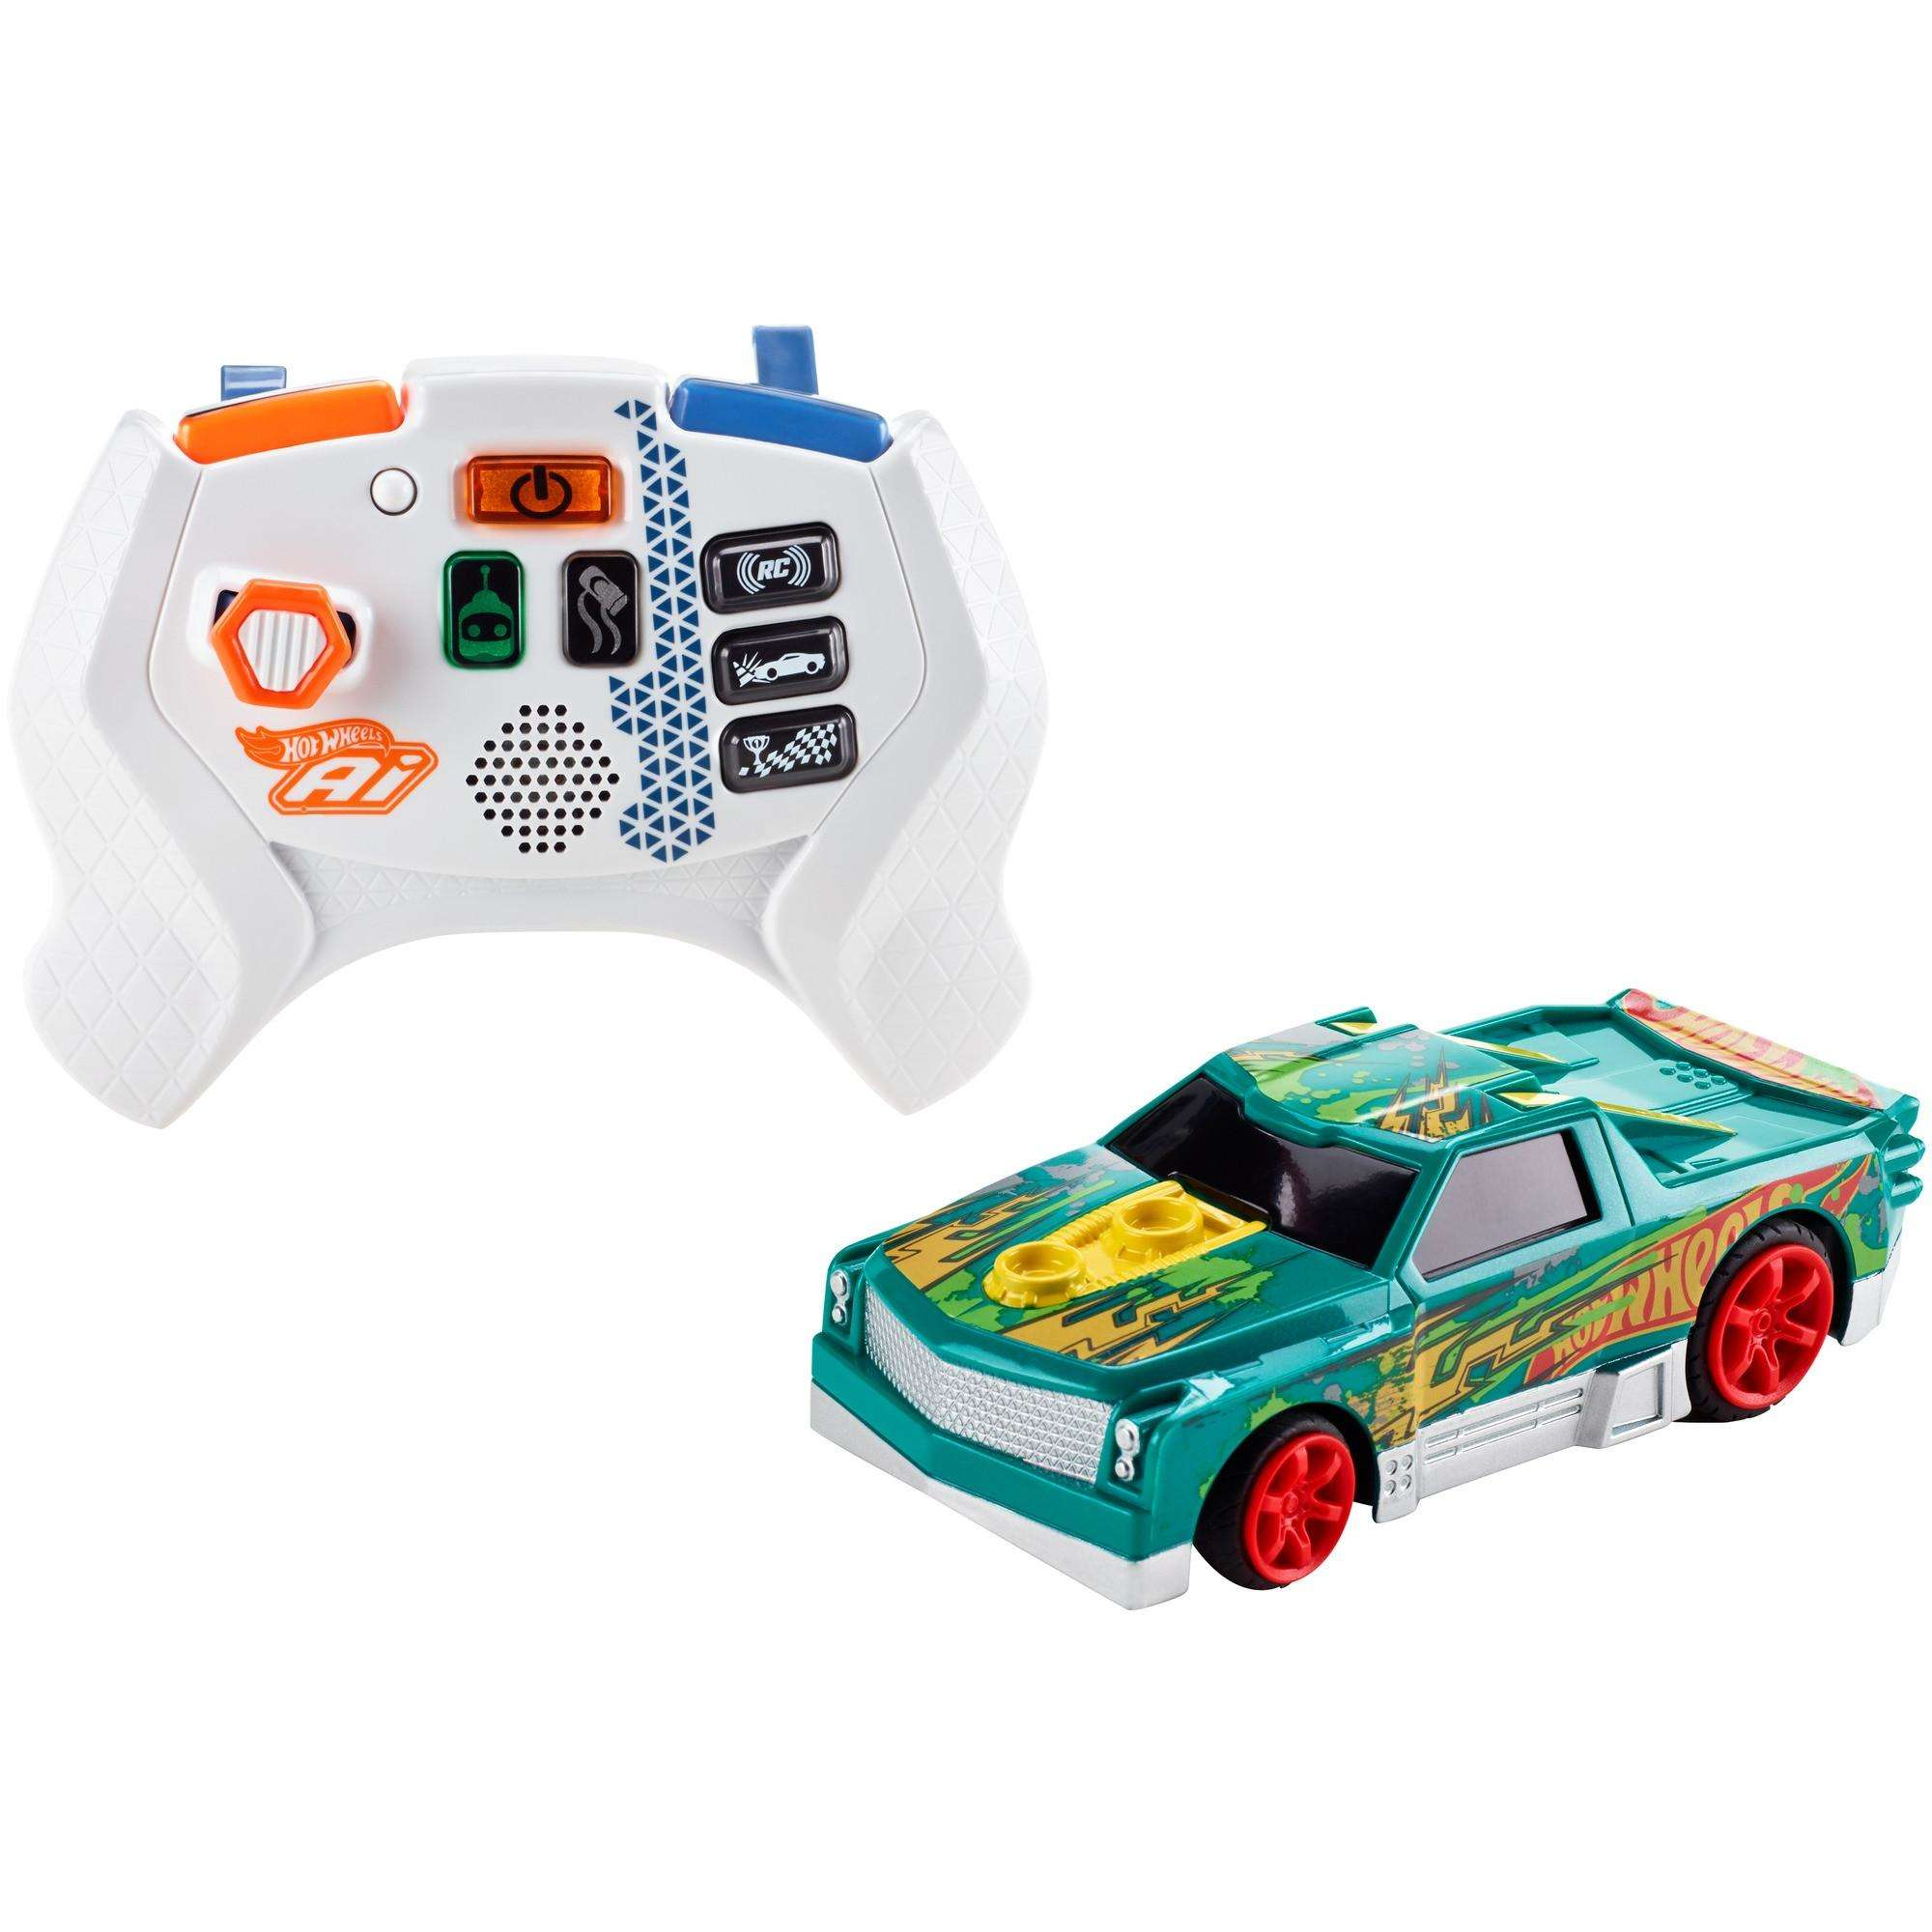 Hot Wheels Ai Turbo Diesel Racing Vehicle and Controller Set